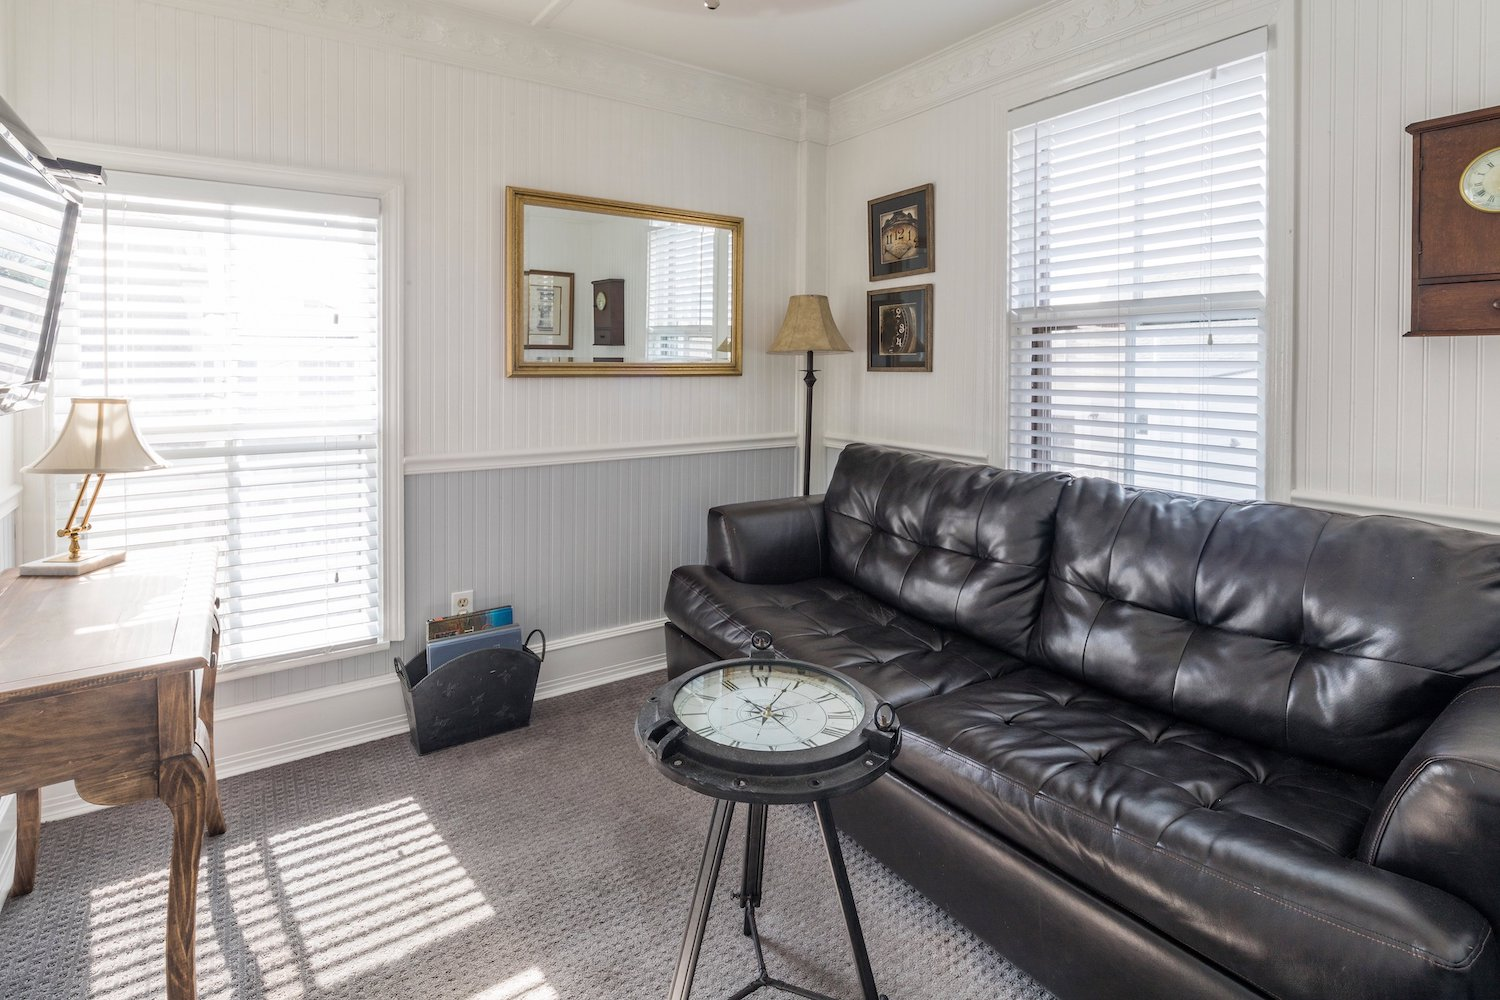 queen-vic-quest-house-provincetown-ROOM-16-LIVING-ROOM